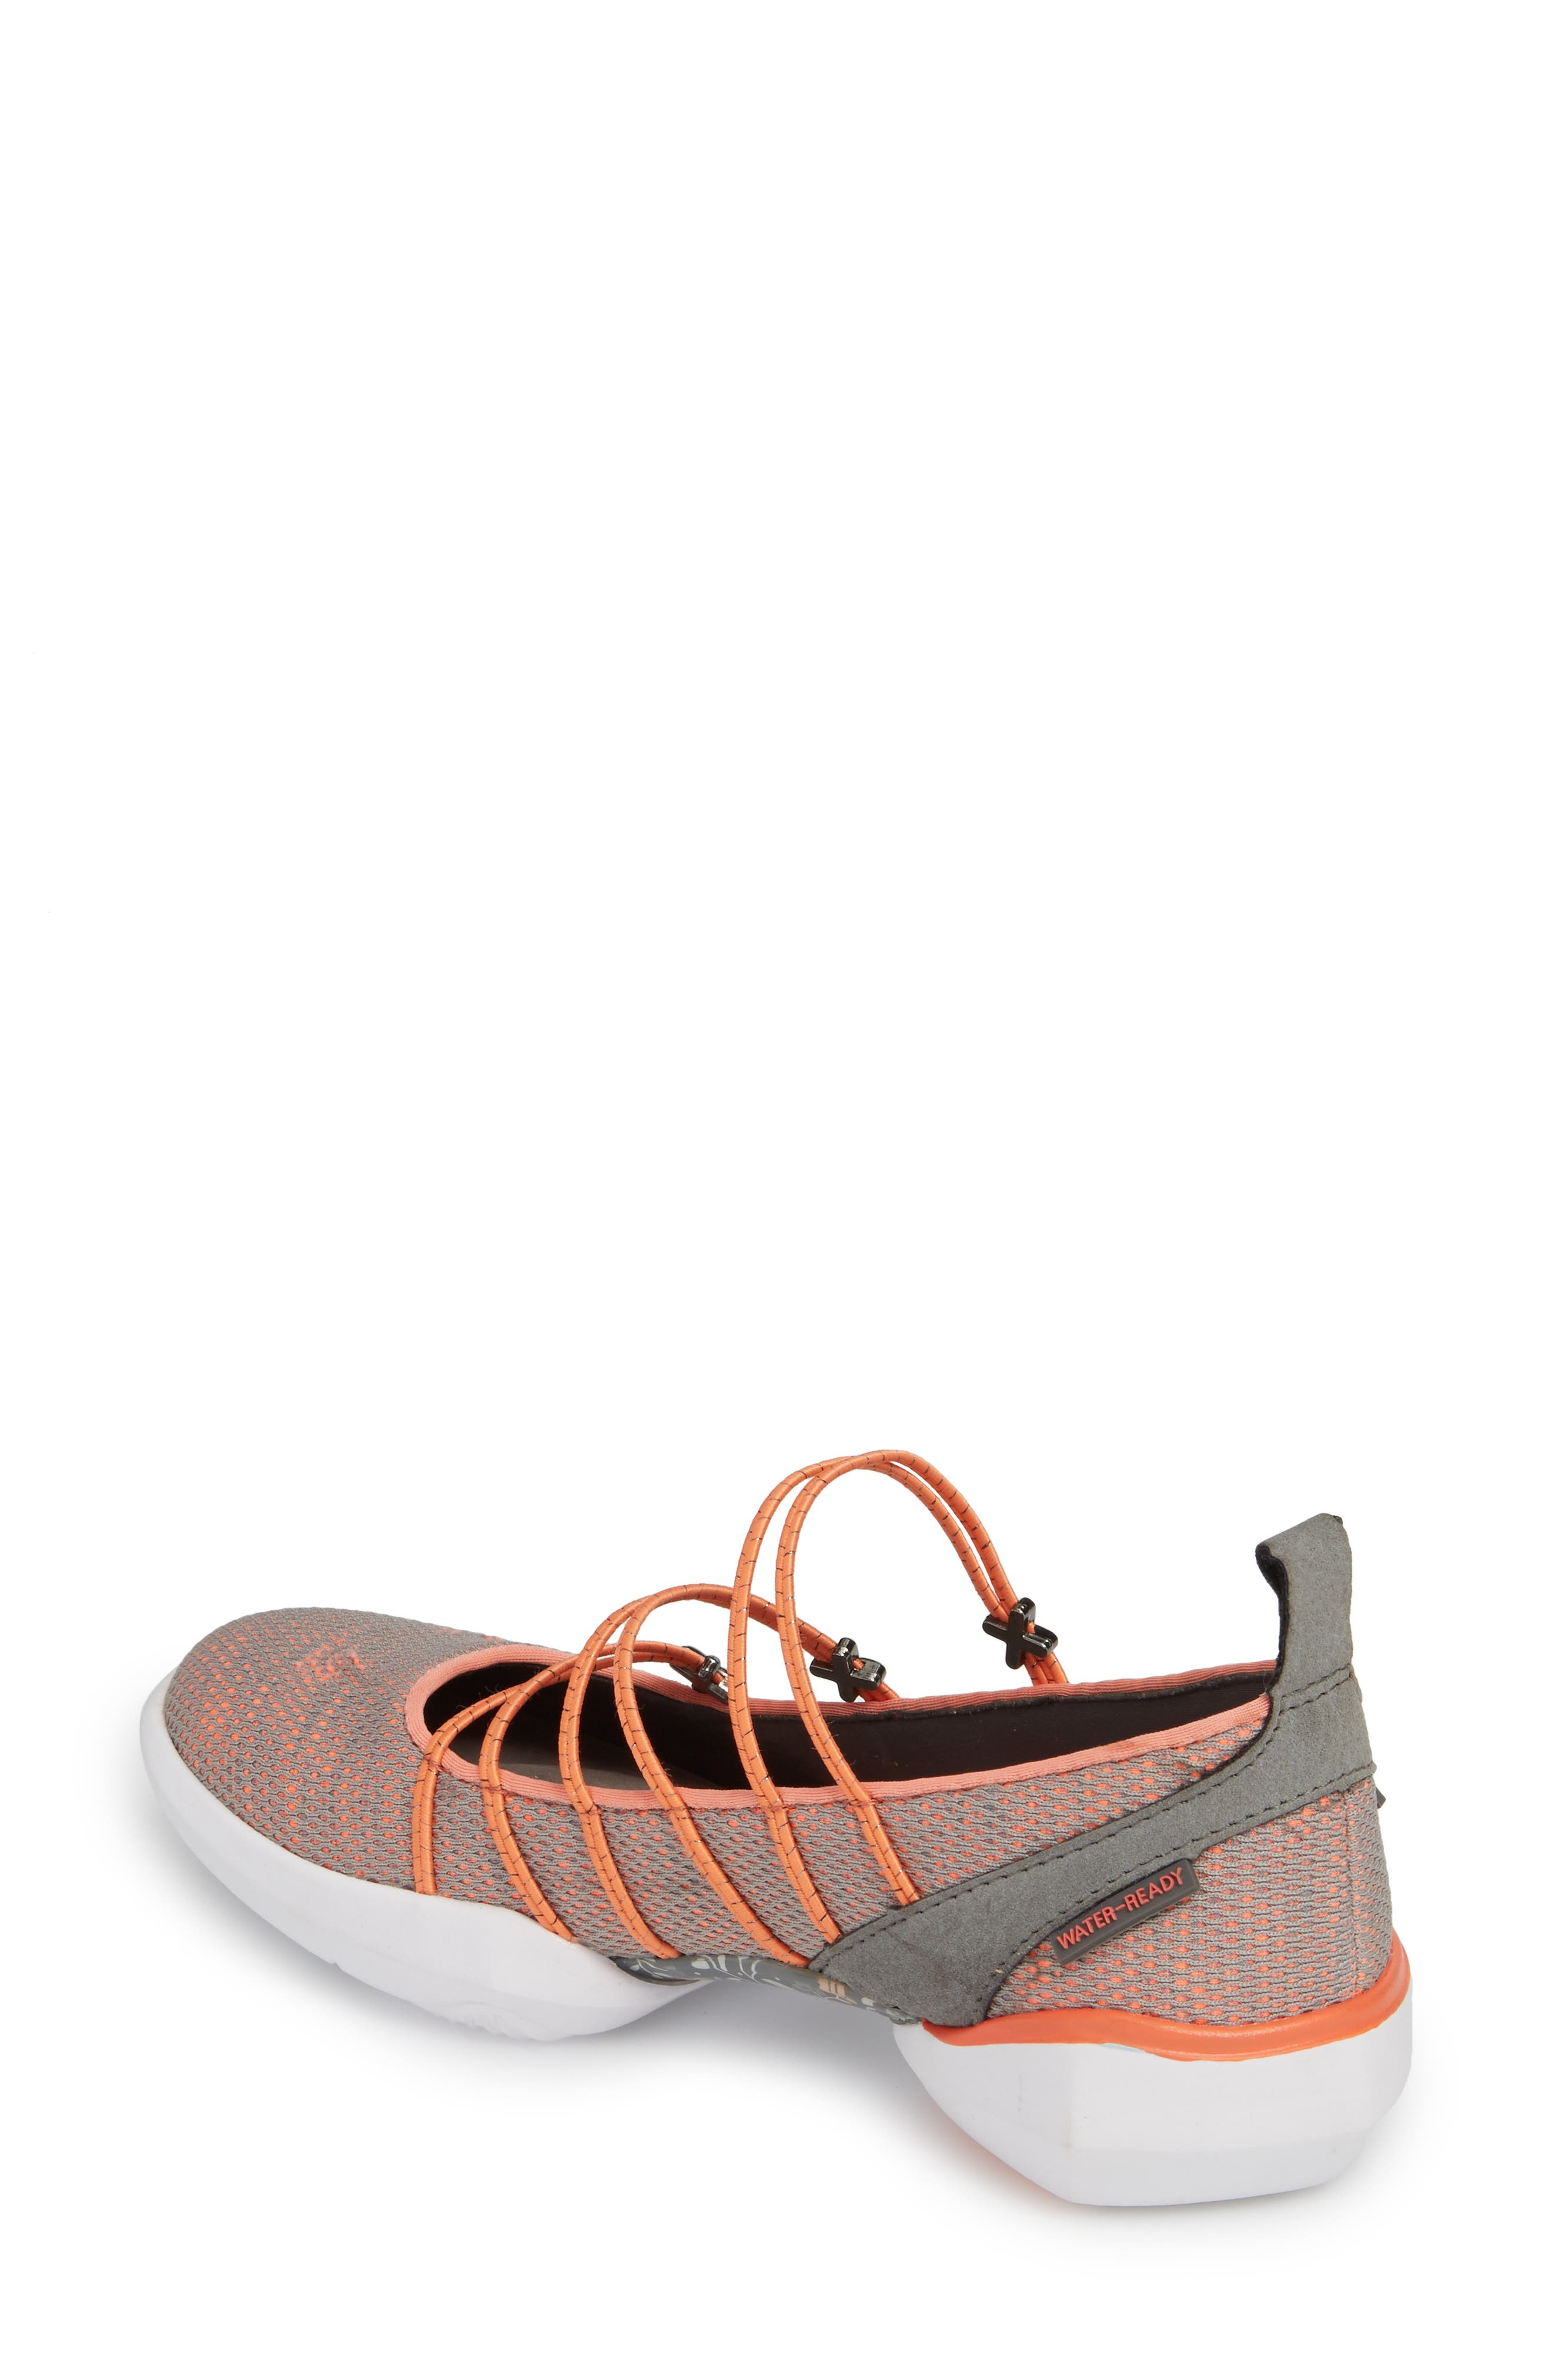 Cheyenne Water Ready Slip-on,                             Alternate thumbnail 2, color,                             ORANGE